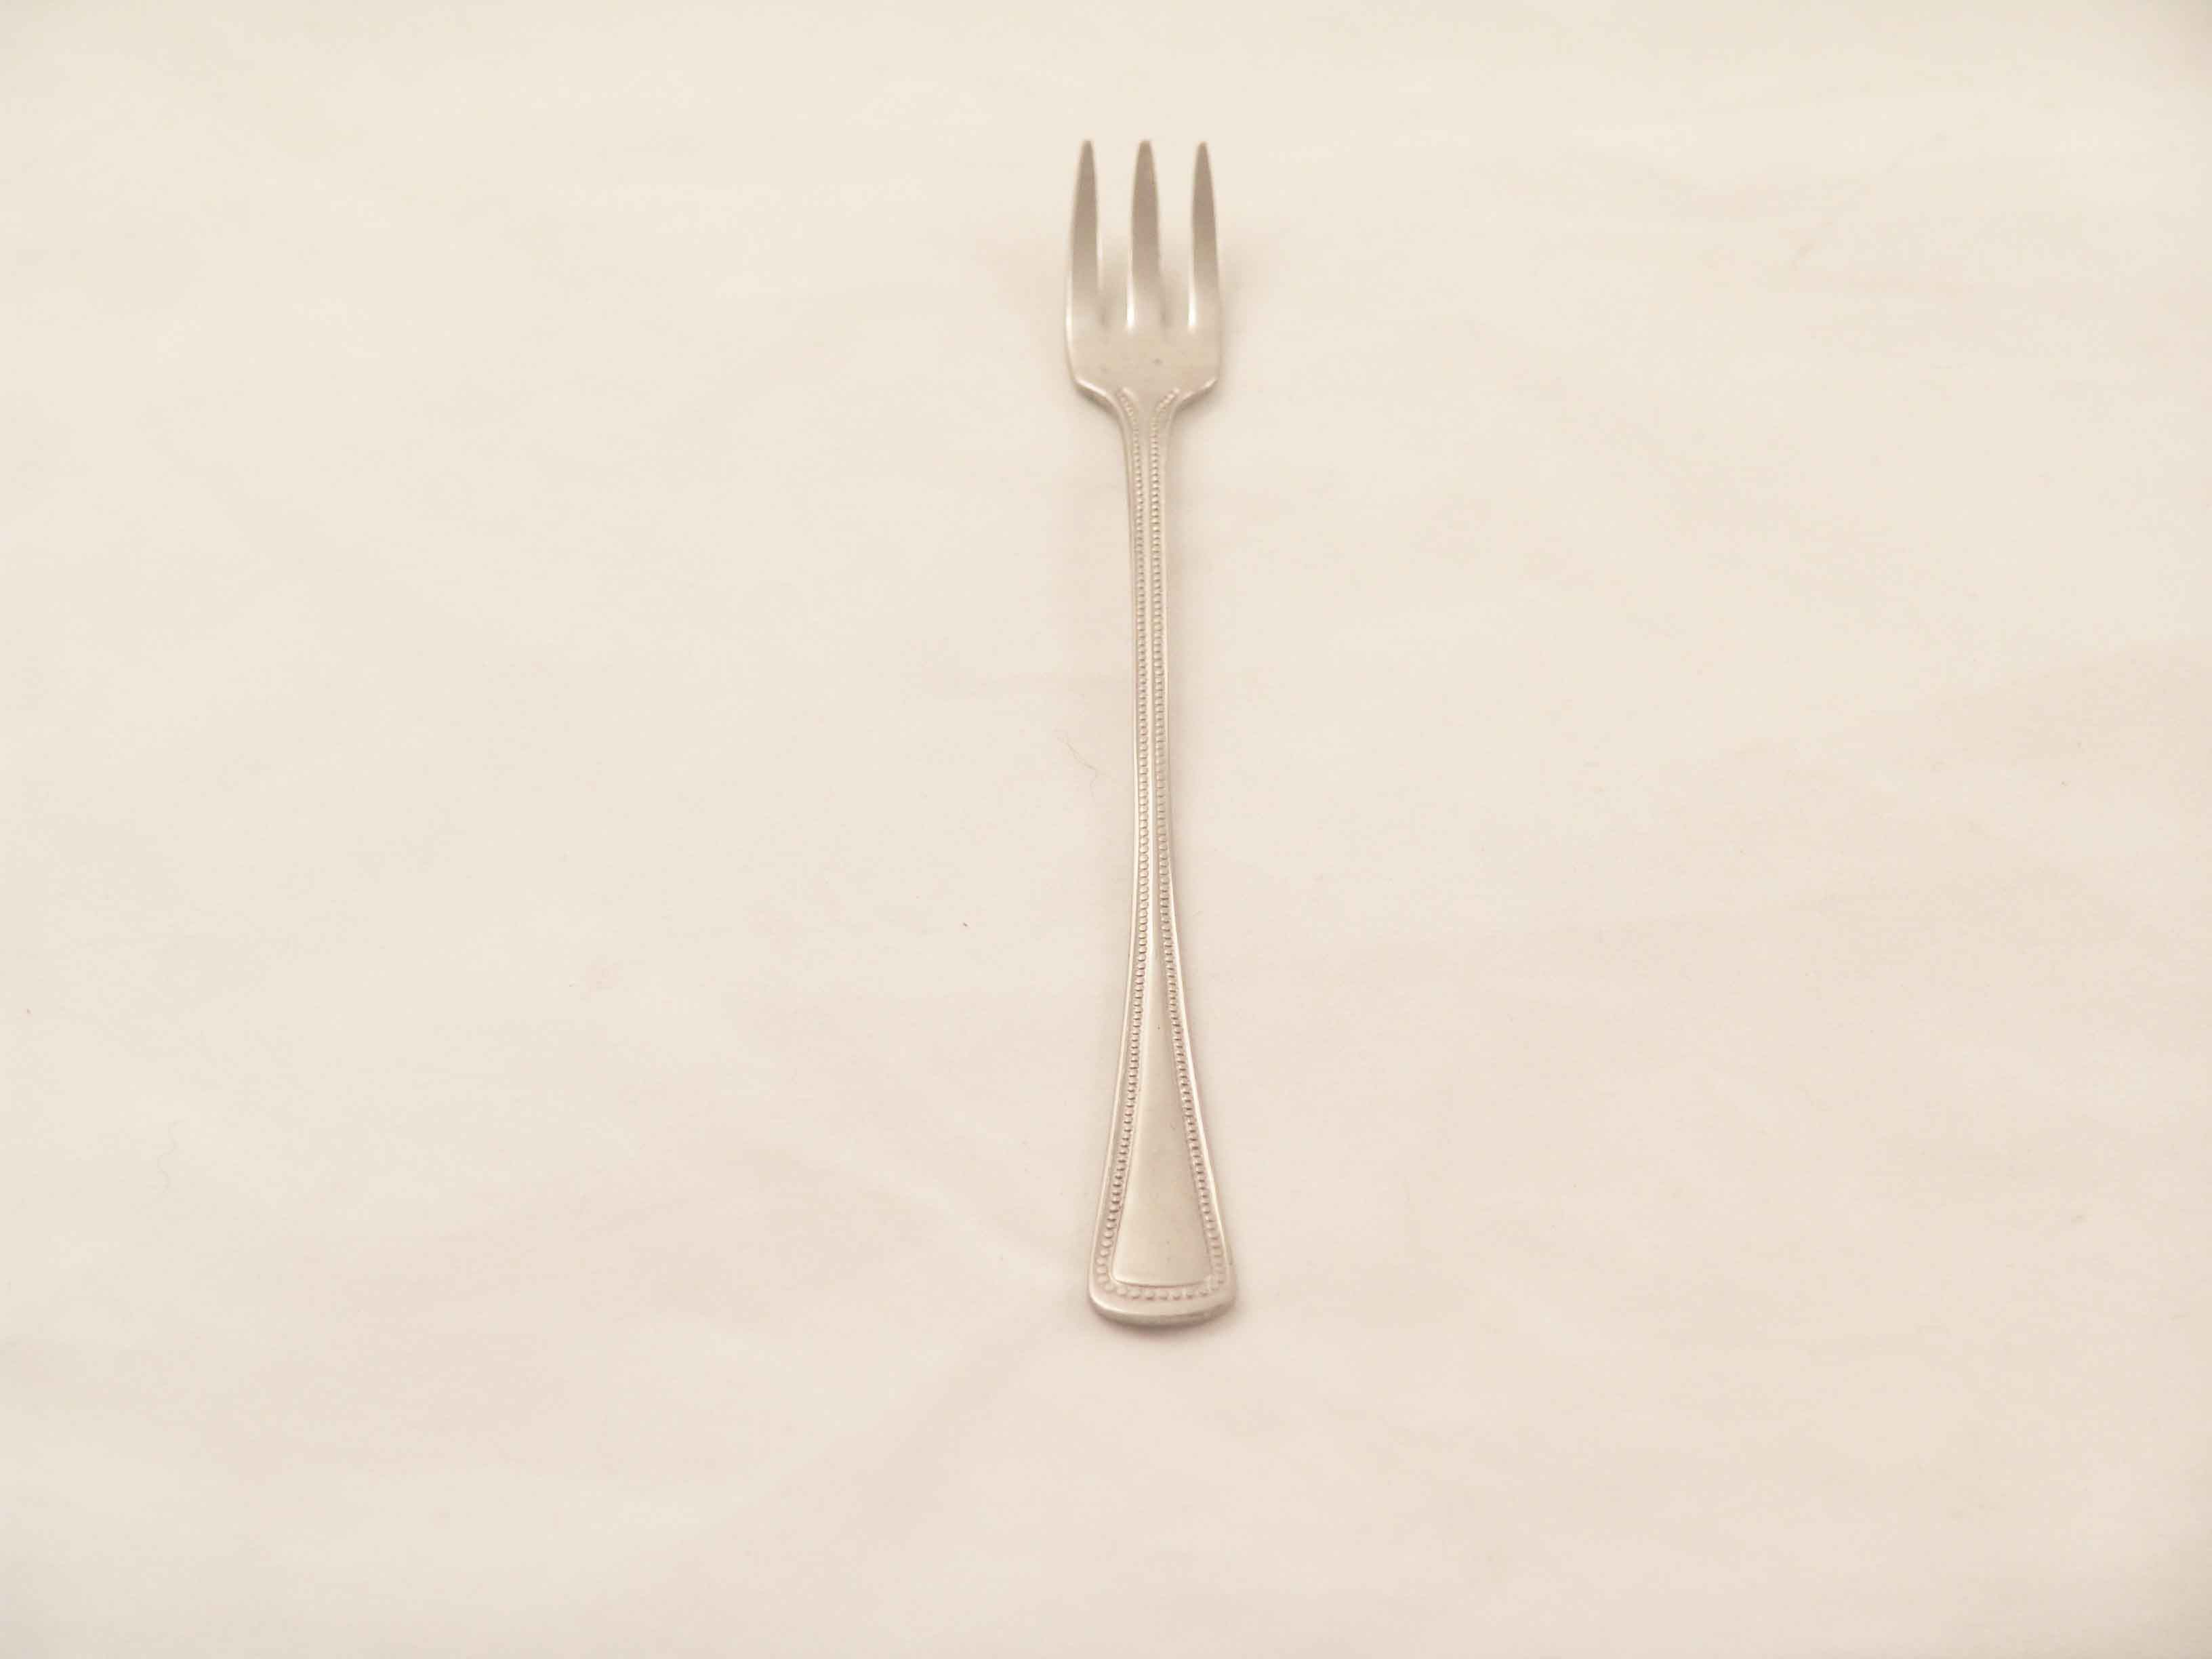 Seafood/Cocktail Fork - CE58 (Qty: 50+)